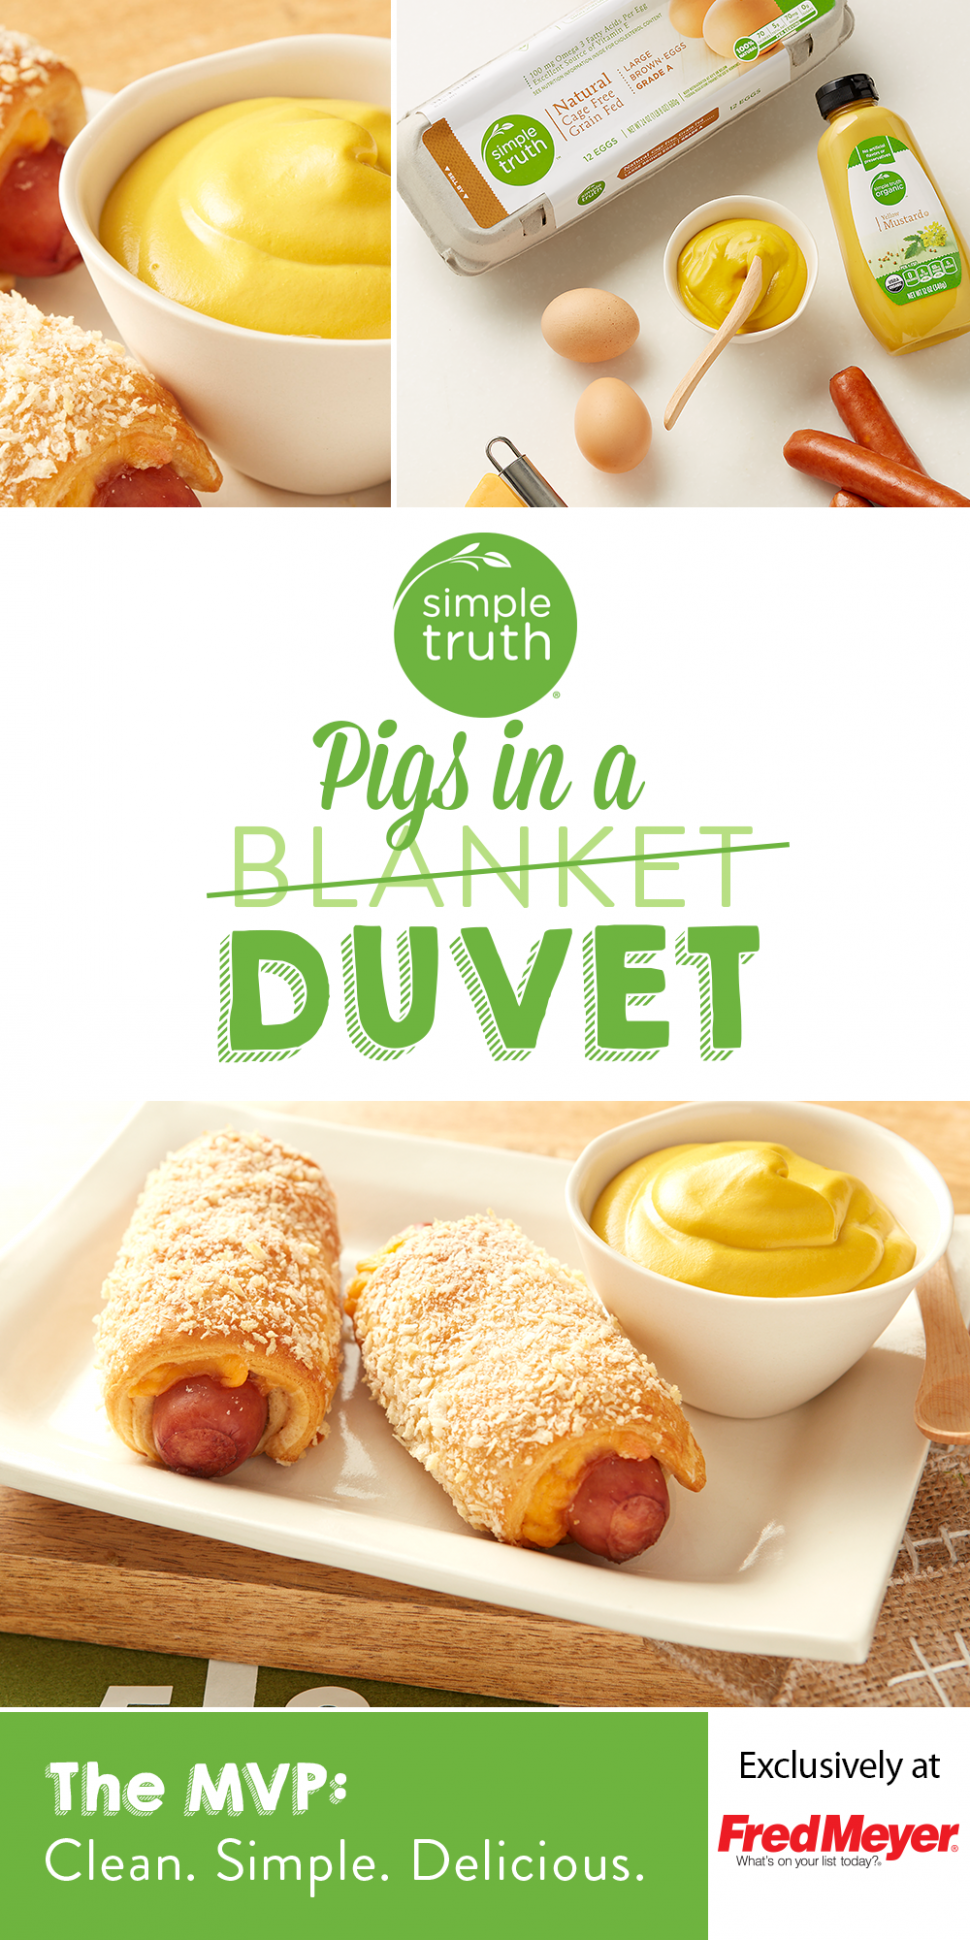 Gourmet Pigs in a Duvet - Cooking Recipes Yummy